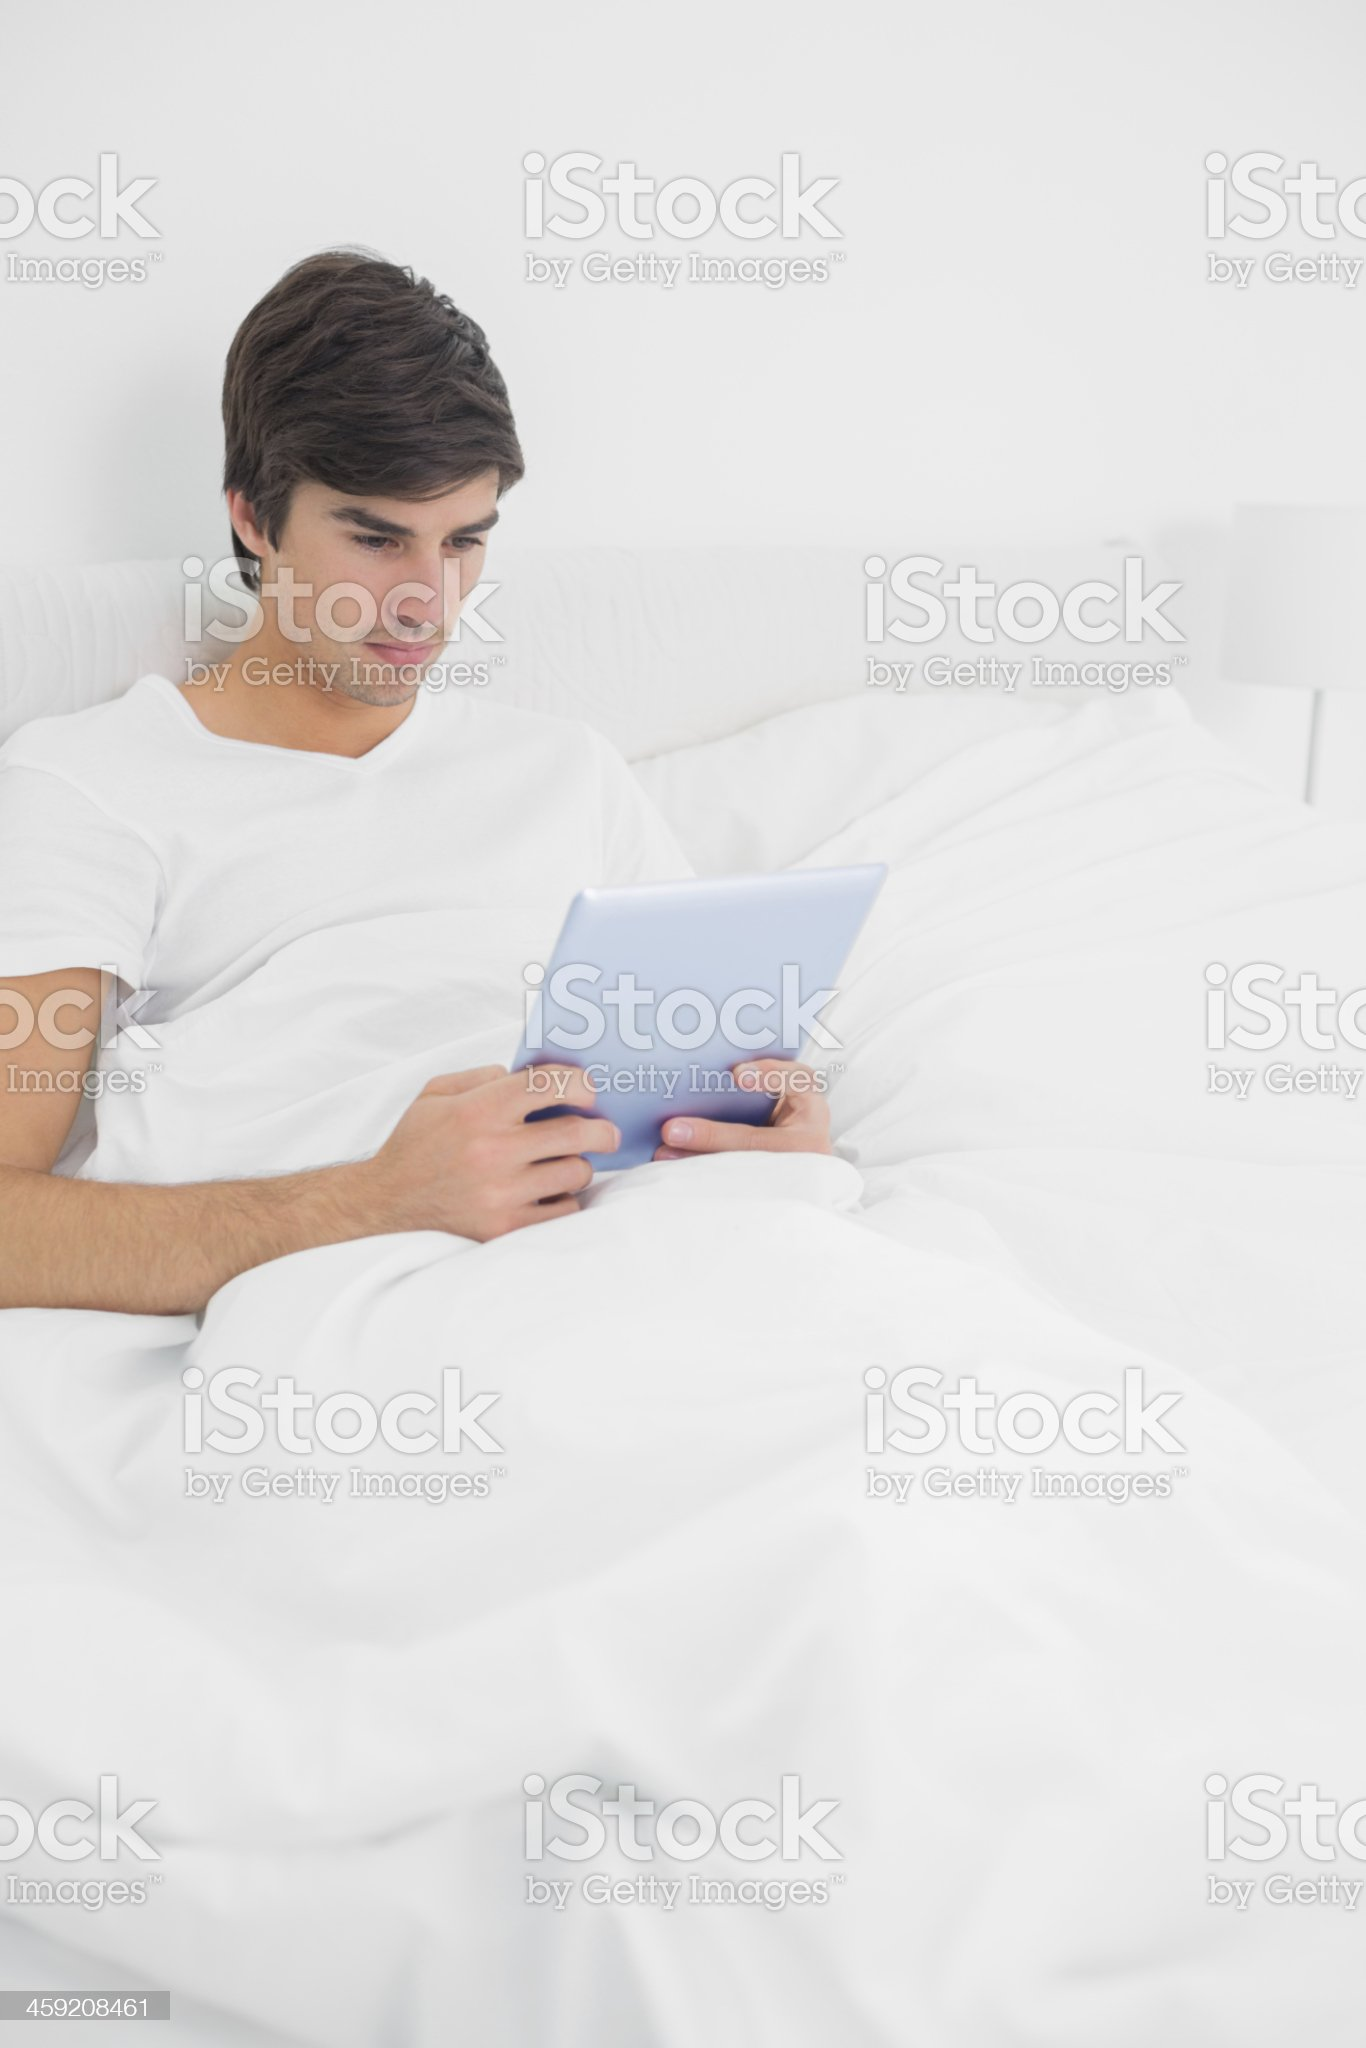 Handsome young man sitting in bed using tablet pc royalty-free stock photo